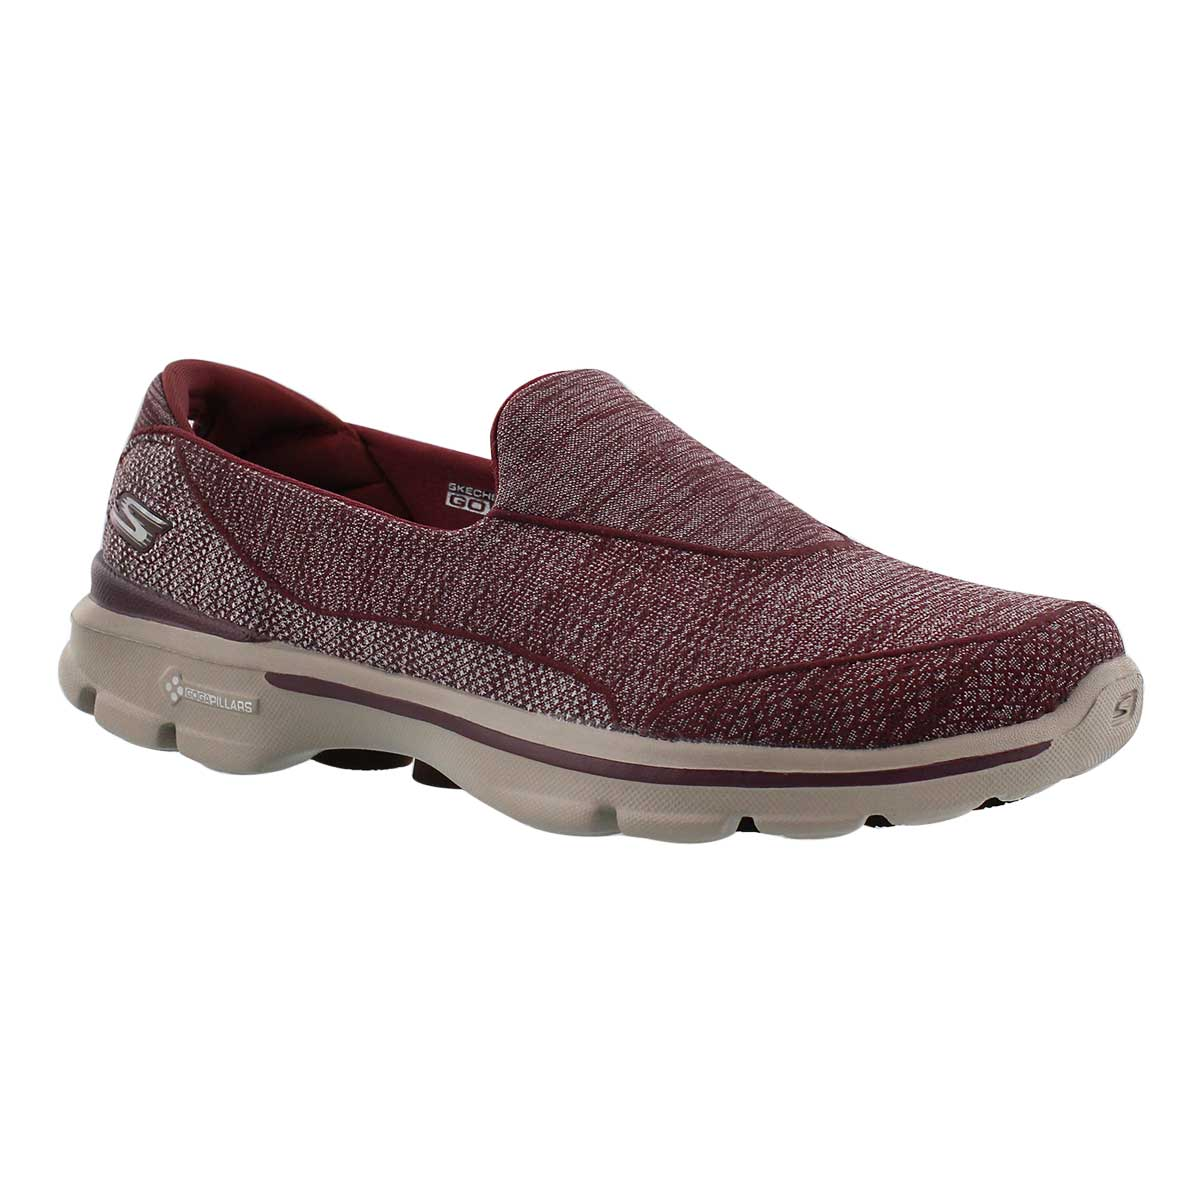 Lds Super Sock 3 burgundy walking shoe